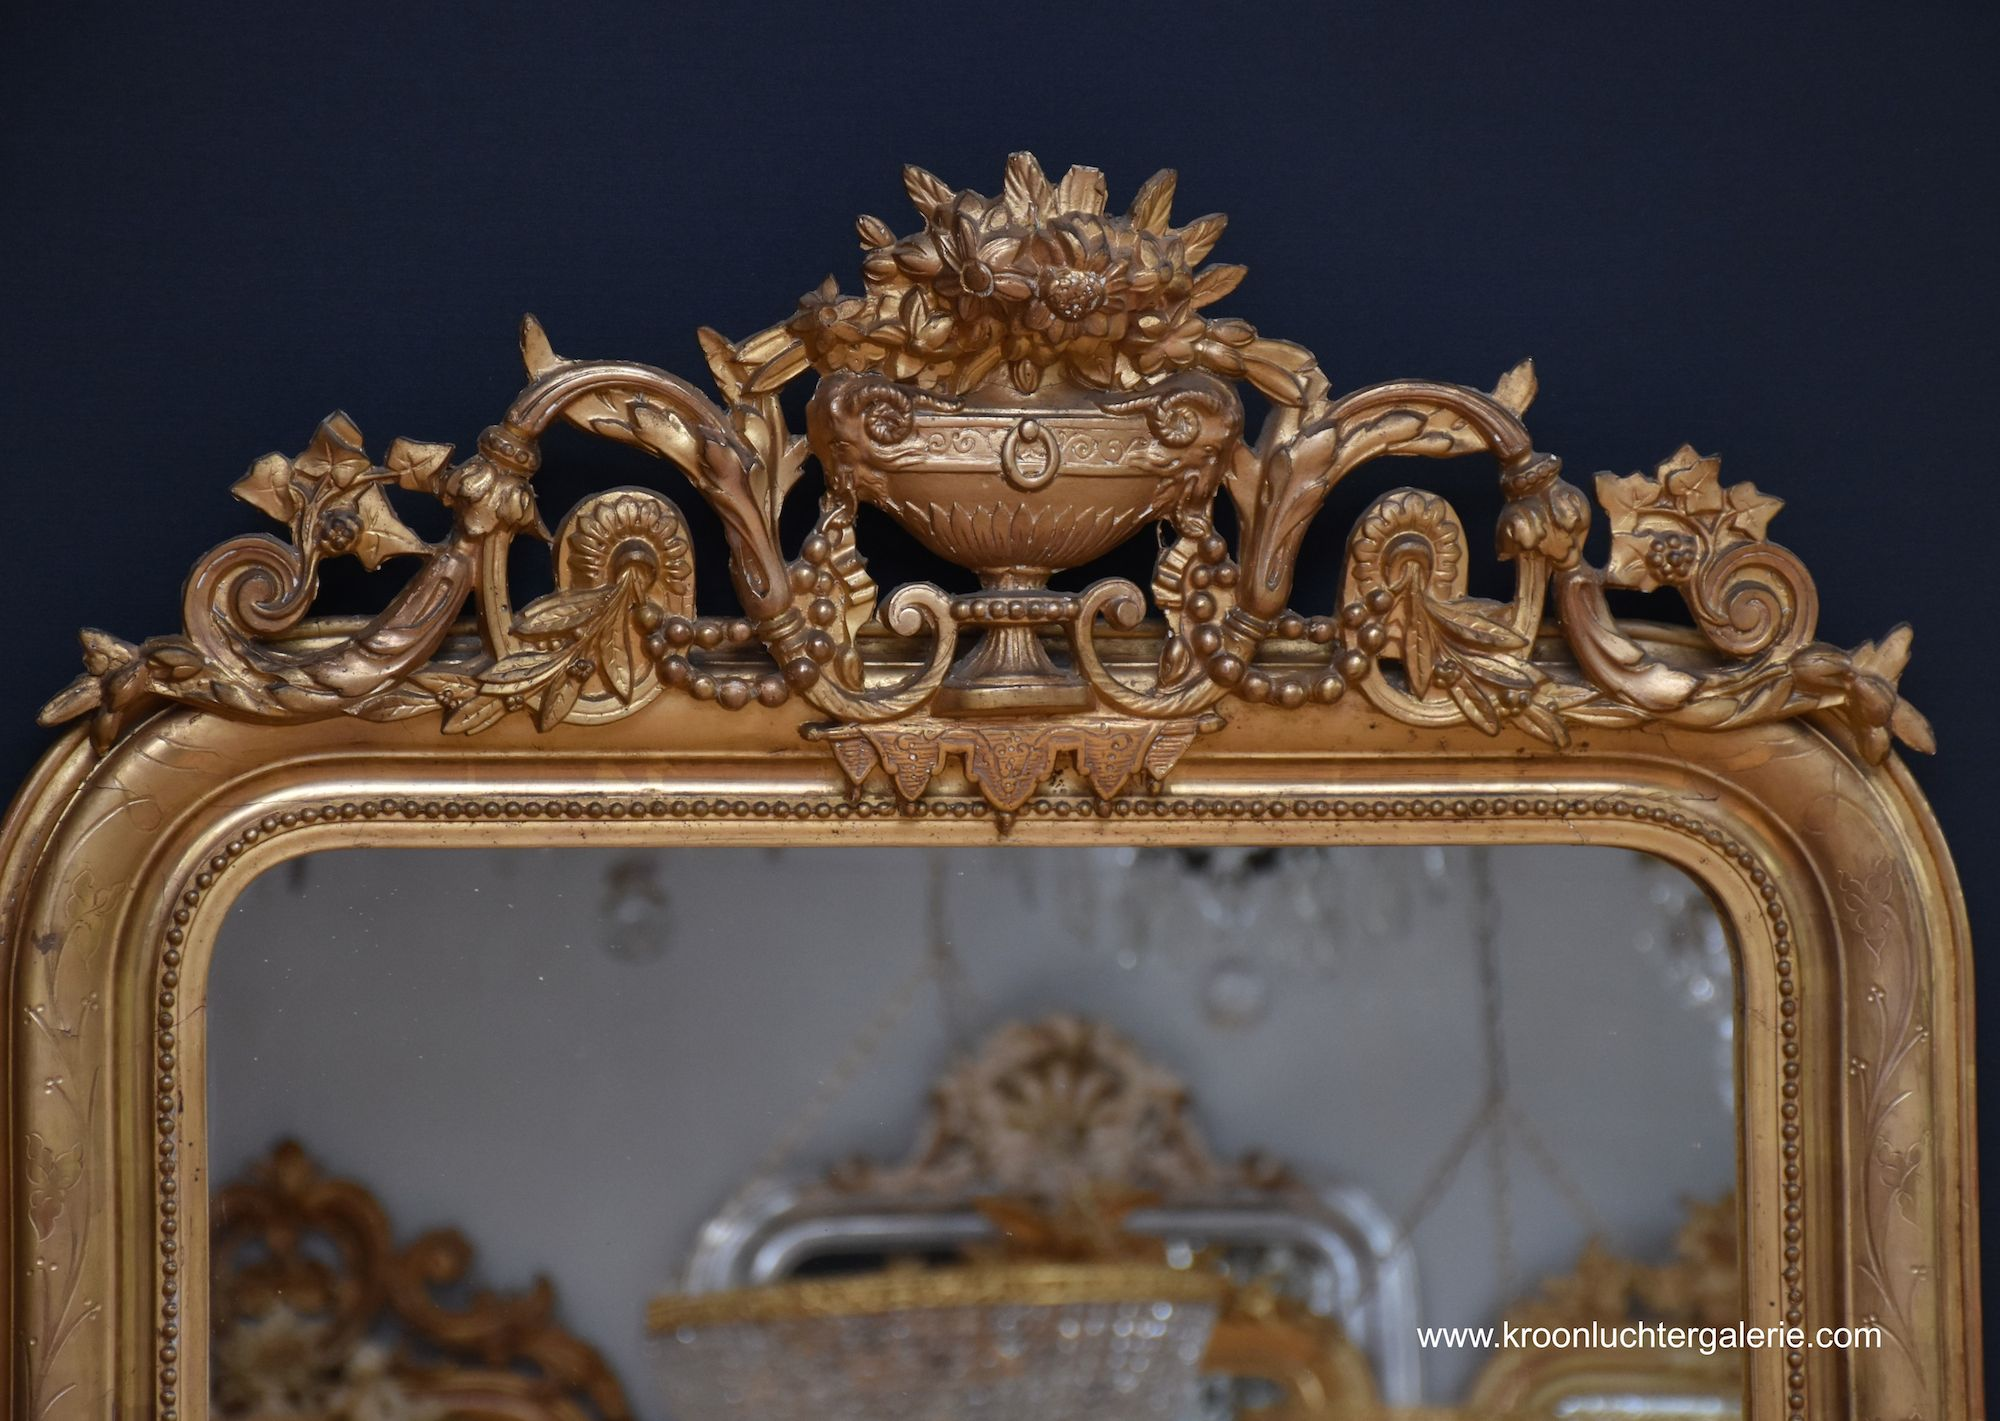 Antique French mirror with a crest, gold-leaf